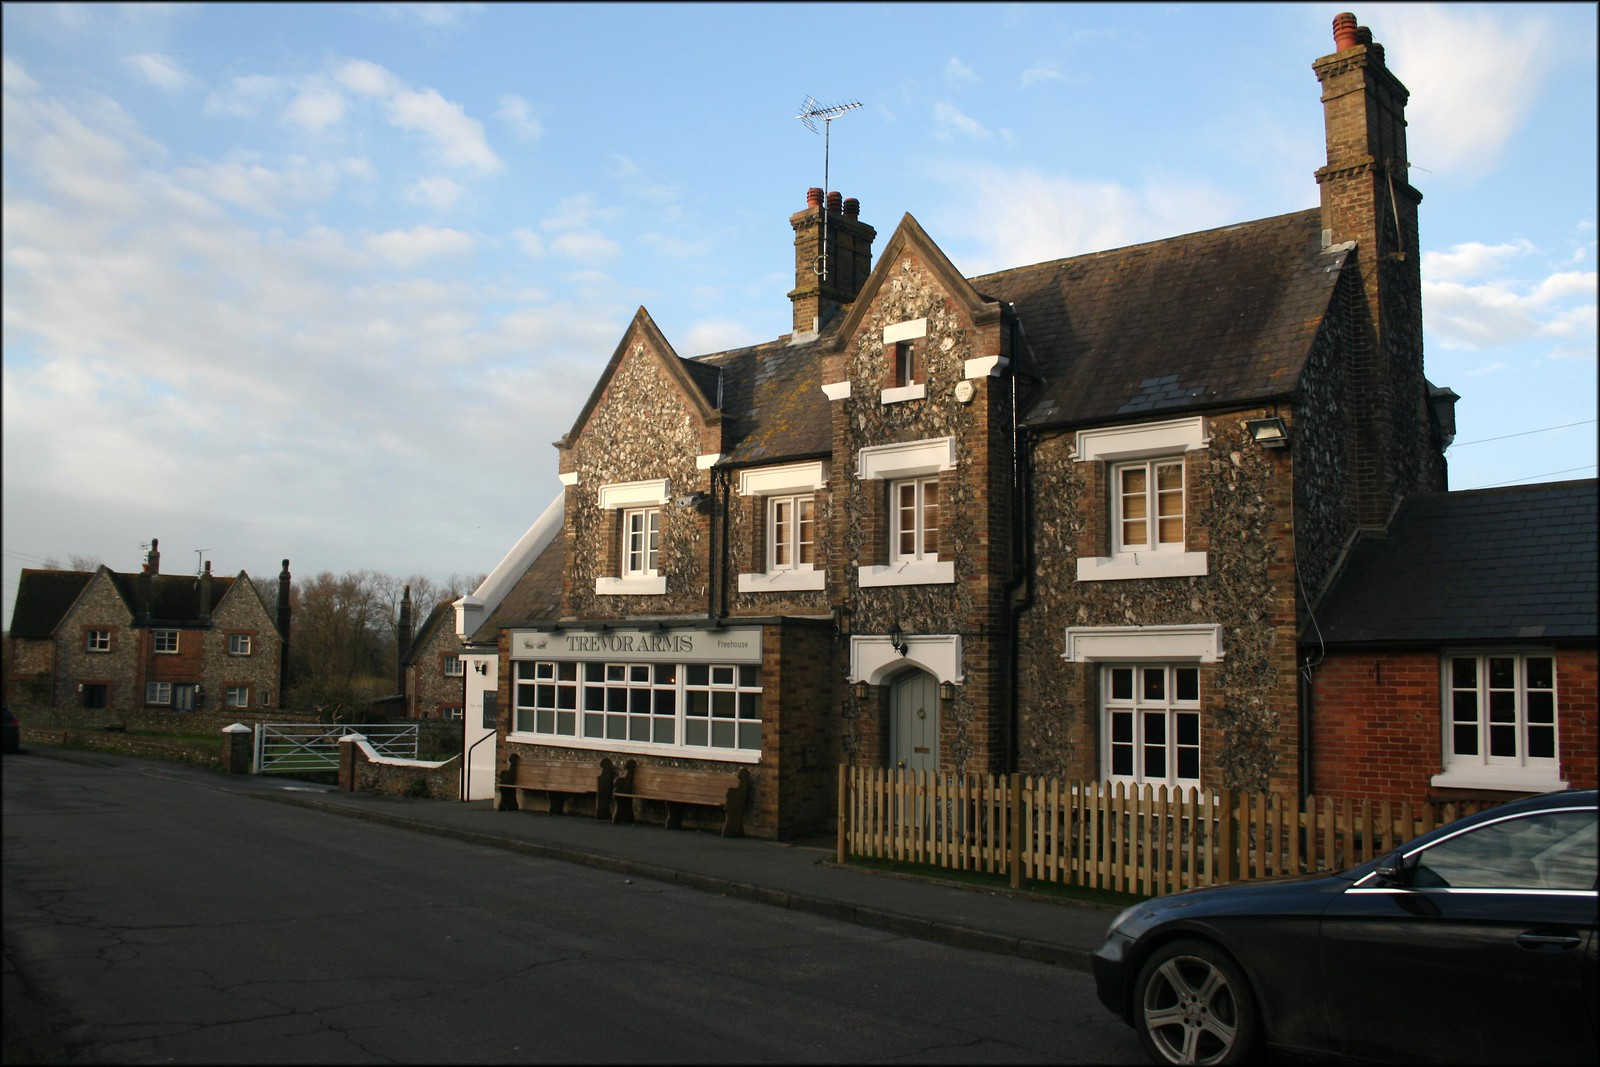 The Trevor Arms, Glynde